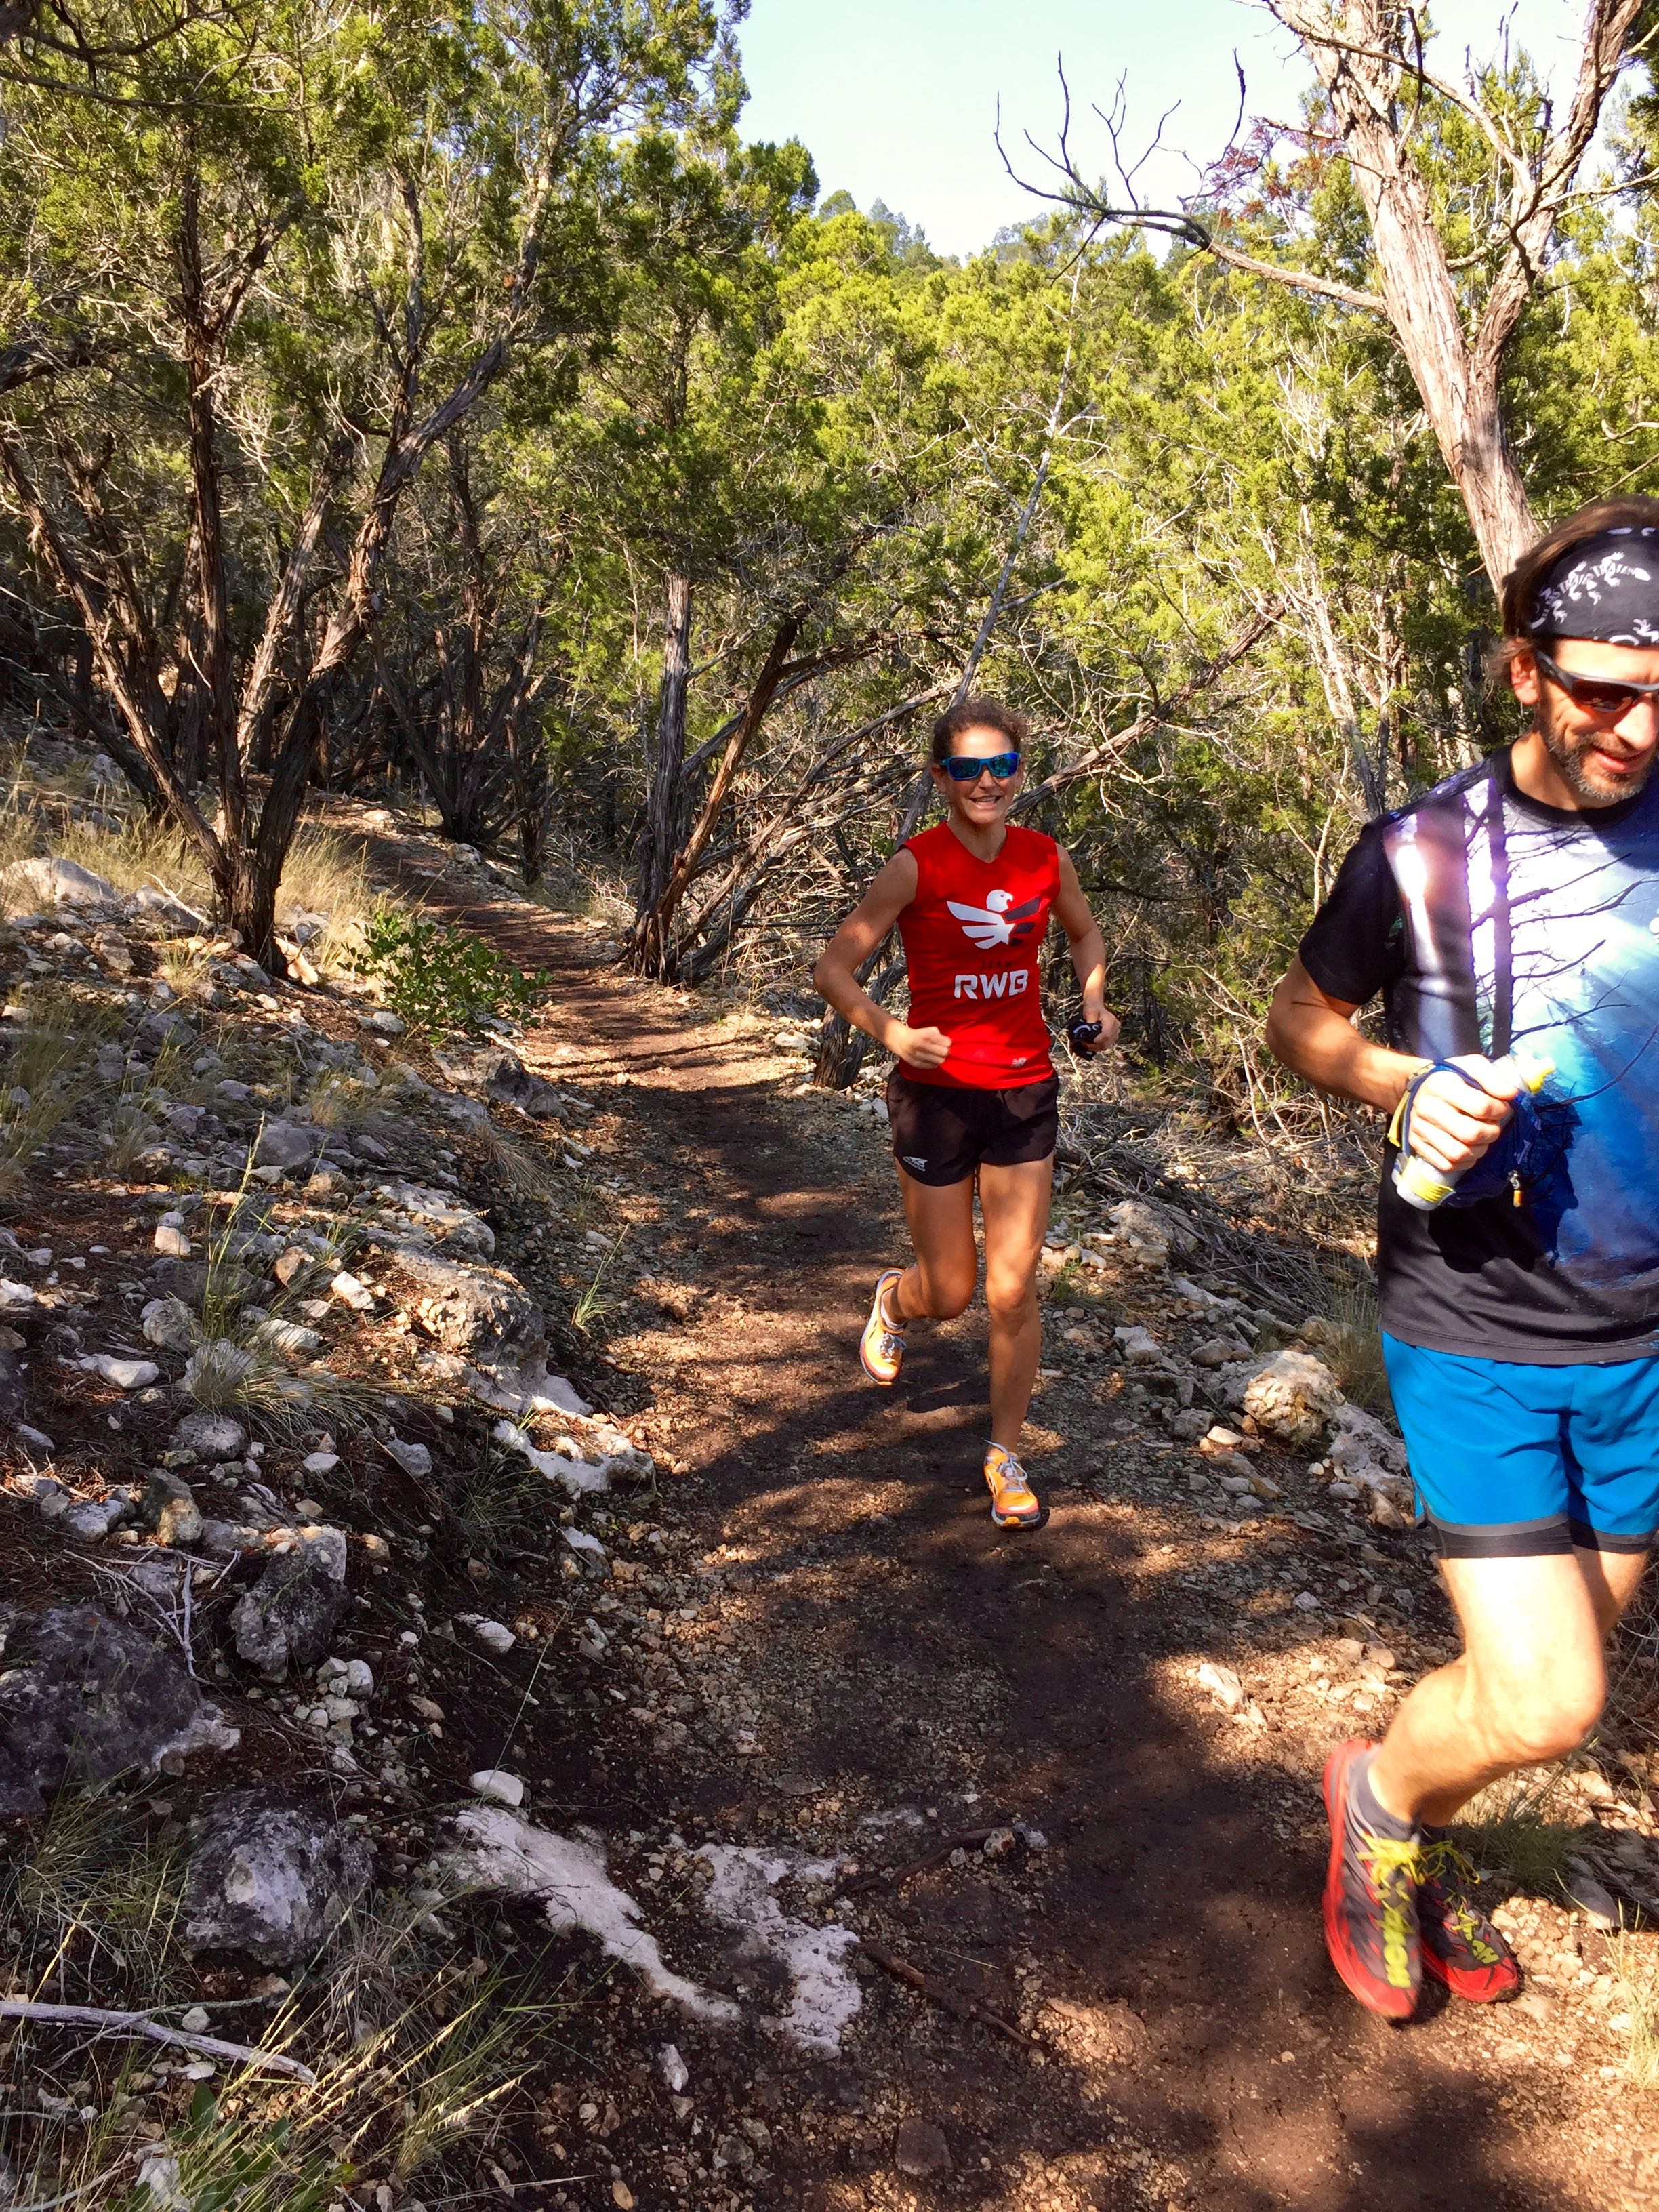 Top-level ultrarunners and great mentors Nicole Struder and Nathan Leeman